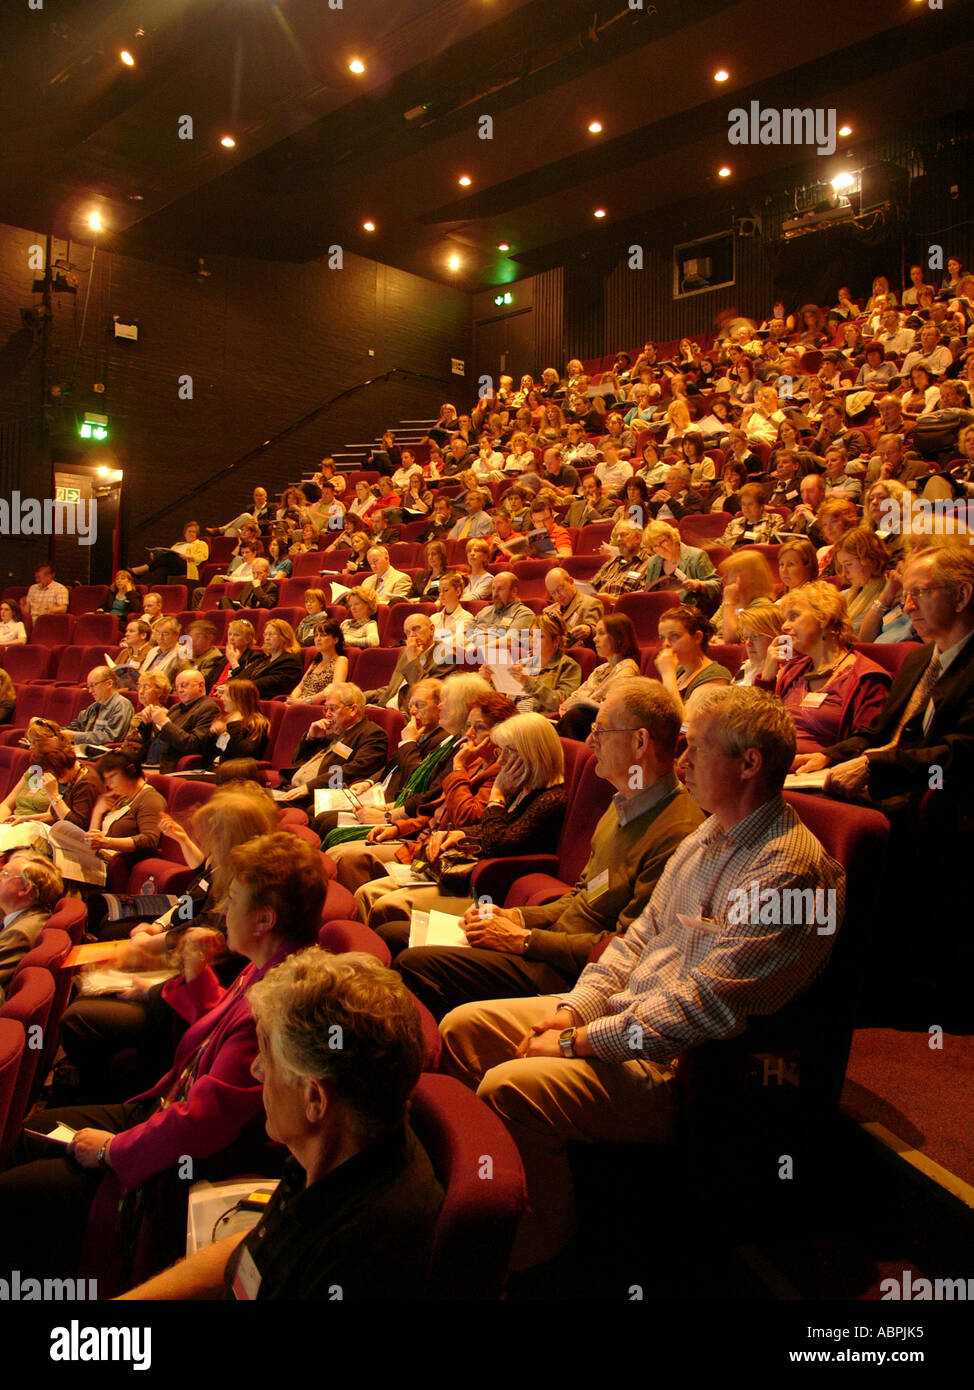 The Theatre at Aberystwyth arts centre - full of people in the audience for a performance of a play drama dance - Stock Image